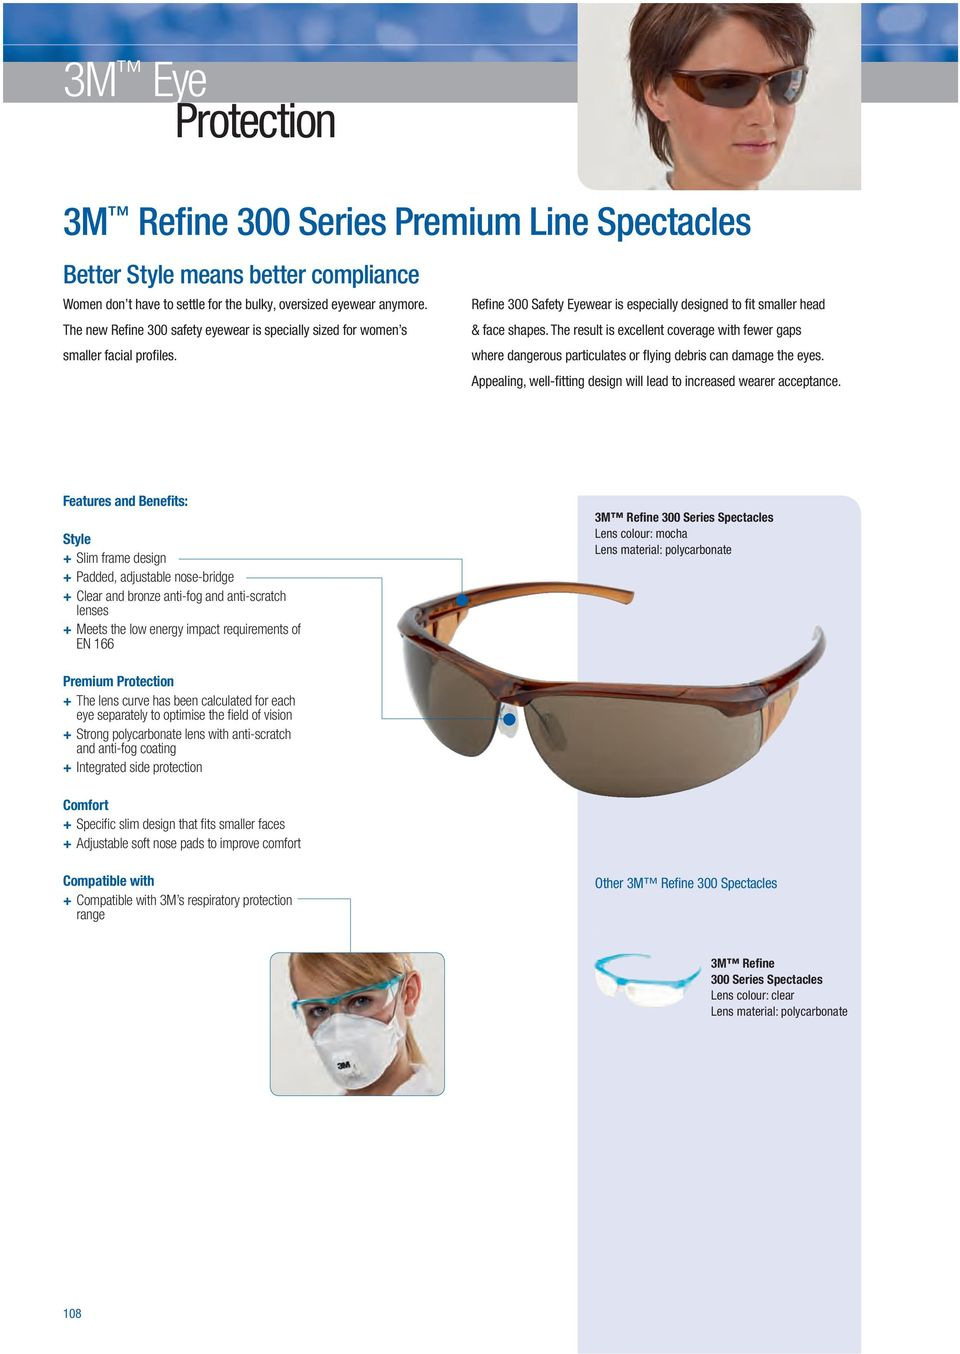 The result is excellent coverage with fewer gaps where dangerous particulates or fl ying debris can damage the eyes. Appealing, well-fi tting design will lead to increased wearer acceptance.